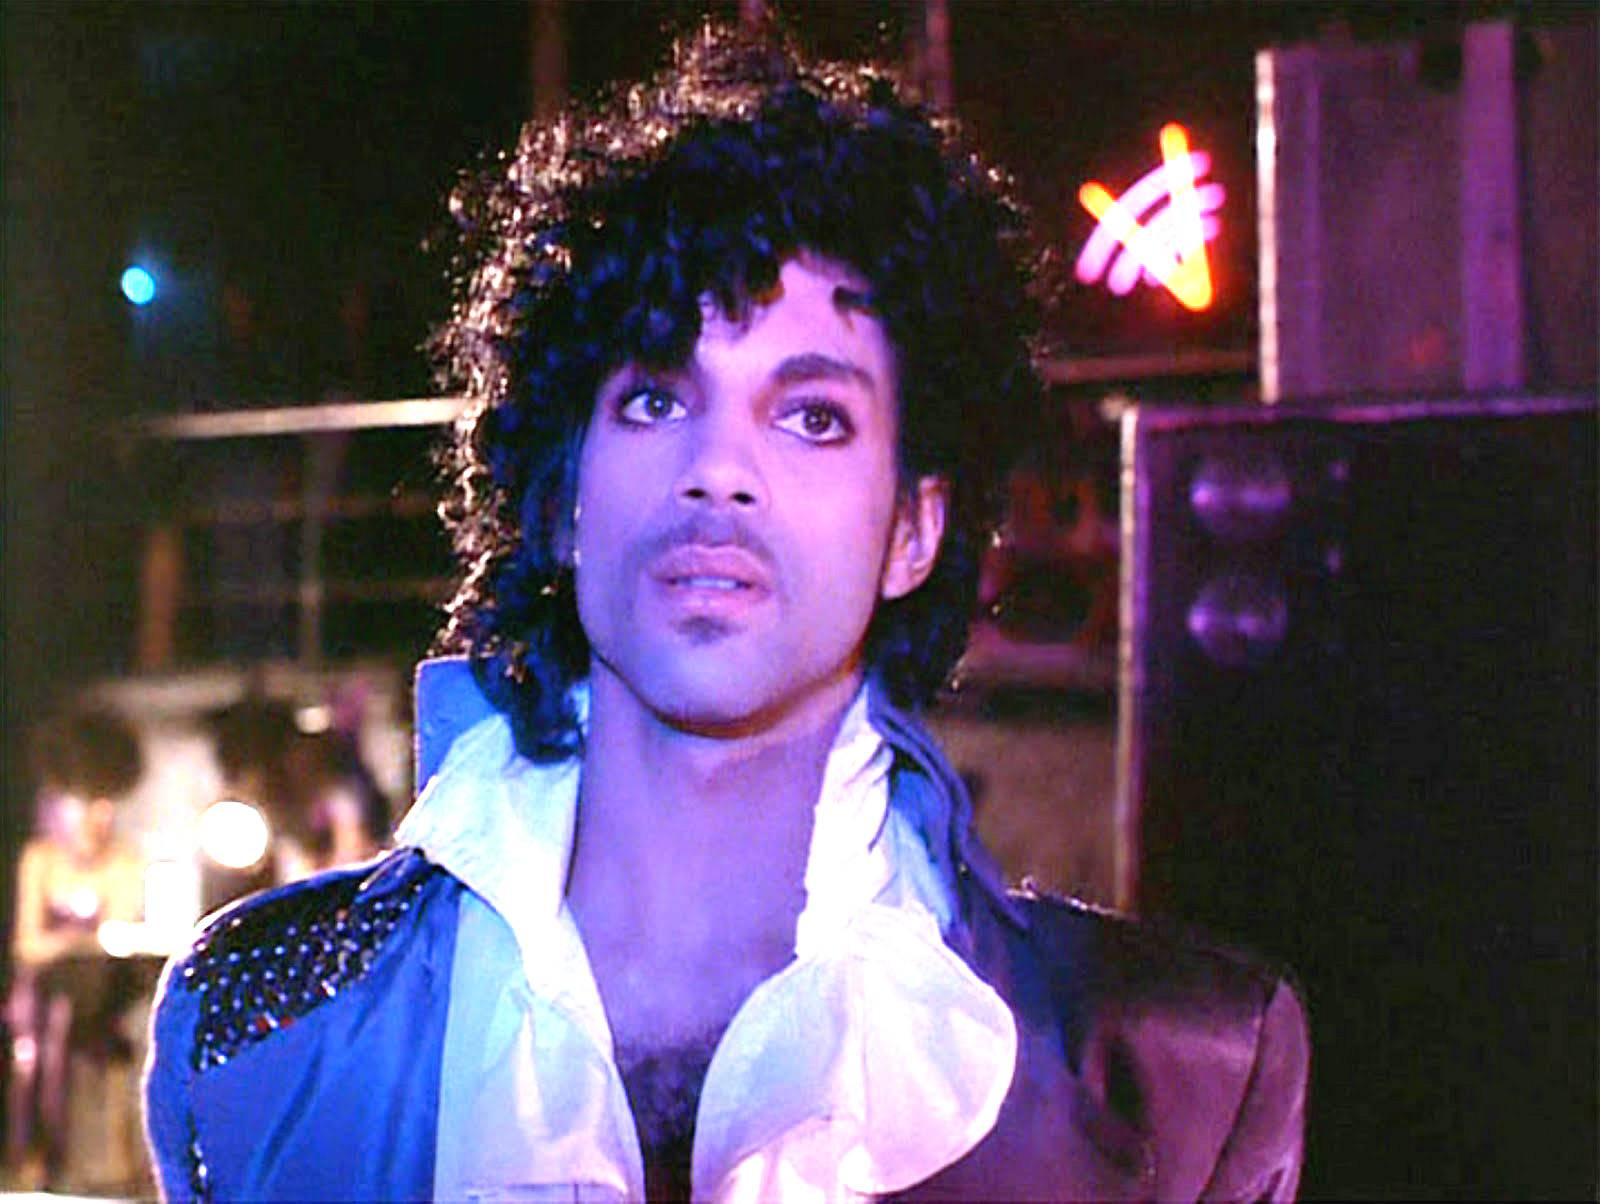 Prince in Purple Rain - It's hard to tell where the album ends and the film begins, but one thing's for sure: Purple Rain is a cinematic odyssey that was way ahead of its time. The semi-autobiographical film showcased the breadth of Prince's talent as an artist, actor and musician and instantly achieved cult status.  (Photo: Warner Bros Pictures)